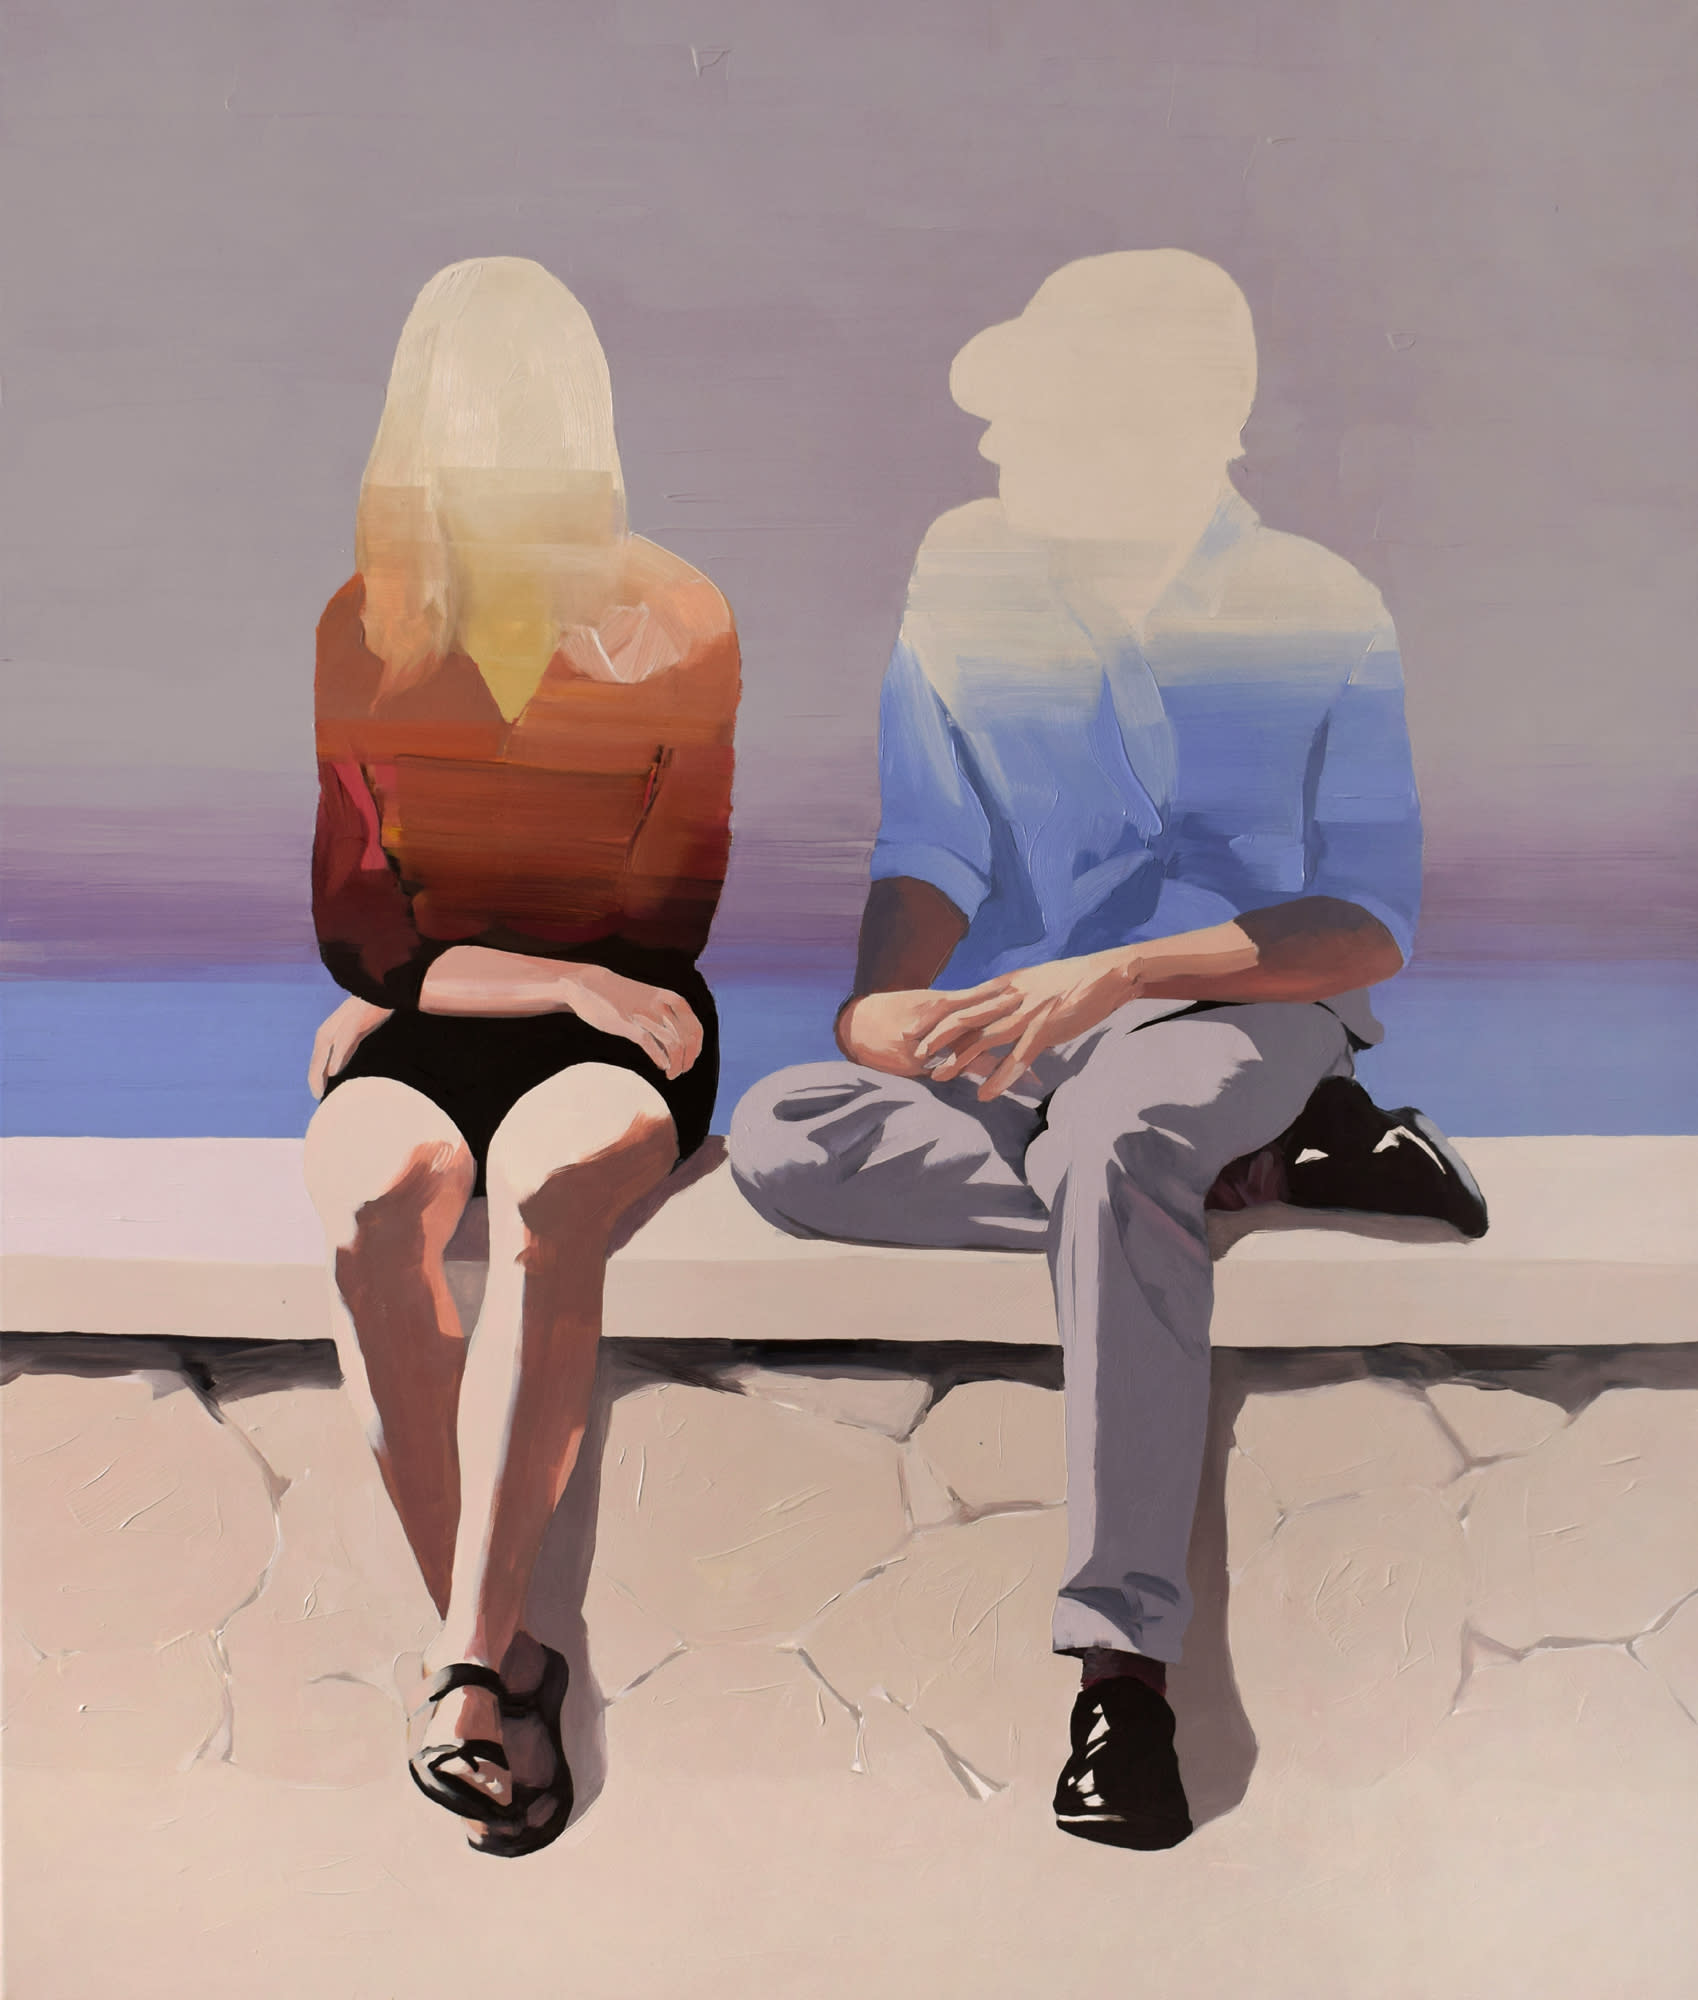 """<span class=""""link fancybox-details-link""""><a href=""""/artists/54-jarek-puczel/works/574-jarek-puczel-couple-at-the-seaside/"""">View Detail Page</a></span><div class=""""artist""""><strong>Jarek Puczel</strong></div> <div class=""""title""""><em>Couple at the Seaside </em></div> <div class=""""medium"""">Oil on Canvas </div> <div class=""""dimensions"""">55 x 47 inches </div>"""